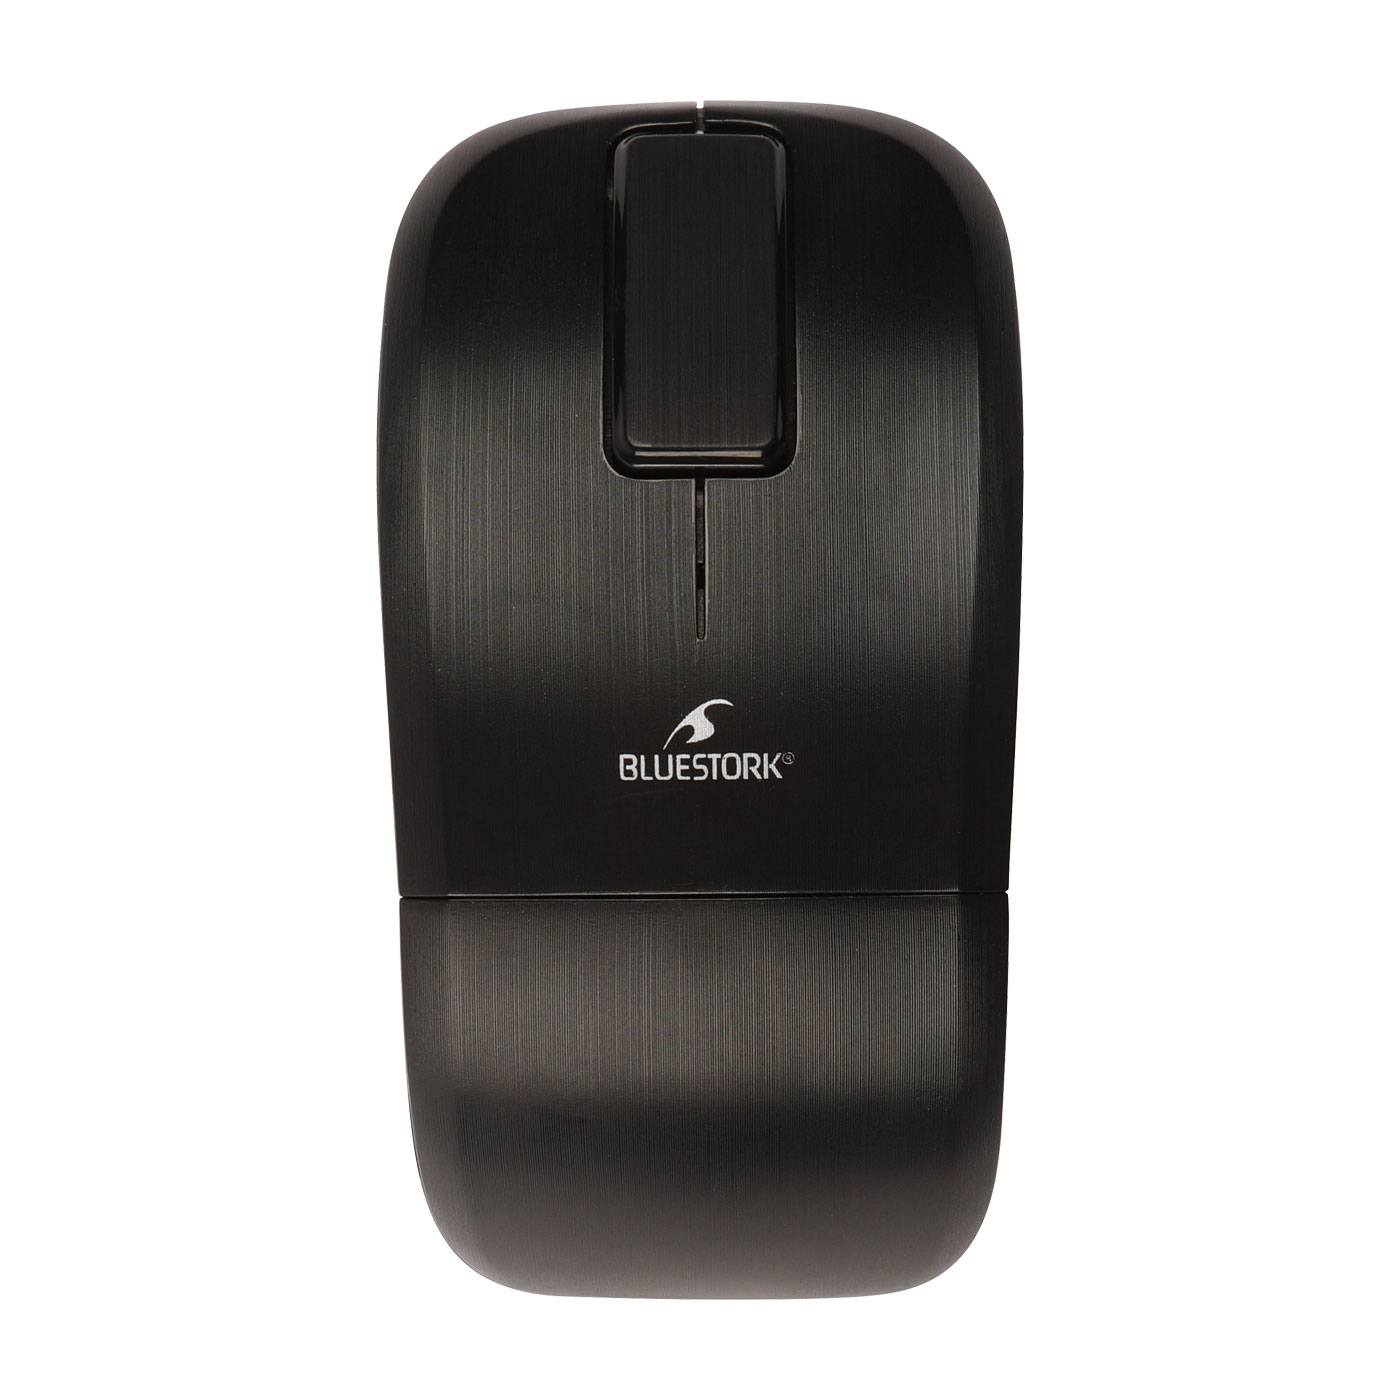 Bluestork Travel Mouse - Souris PC Bluestork - Cybertek.fr - 1